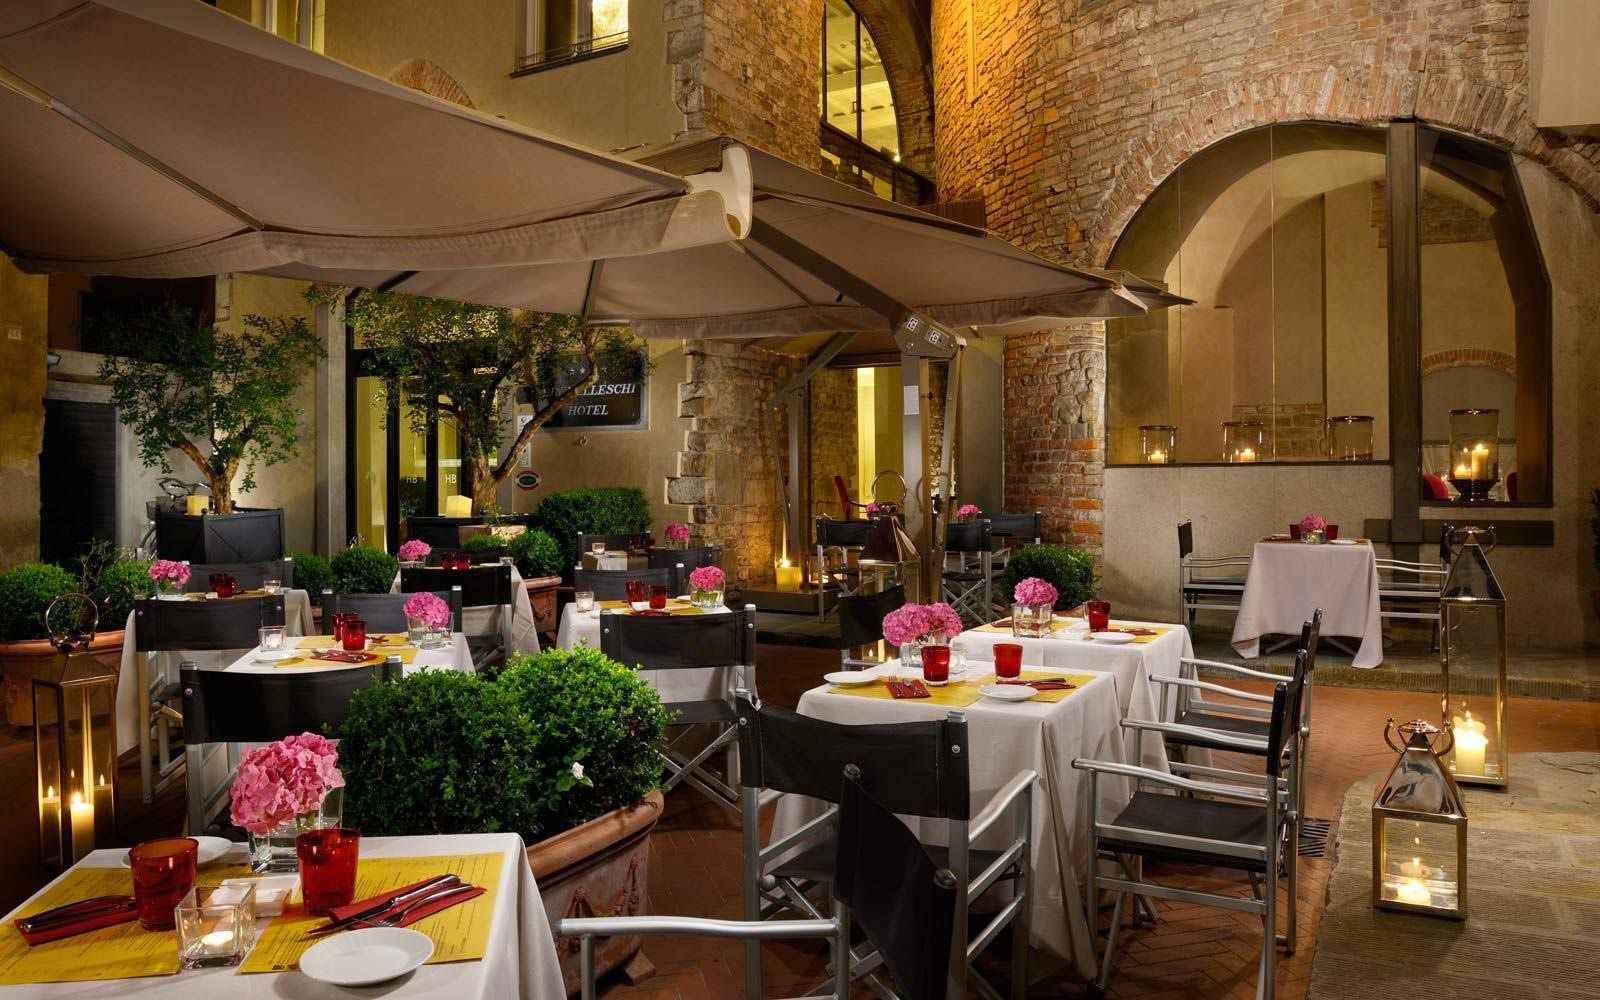 Outdoor area of the Osteria della Pagliazza restaurant at Hotel Brunelleschi